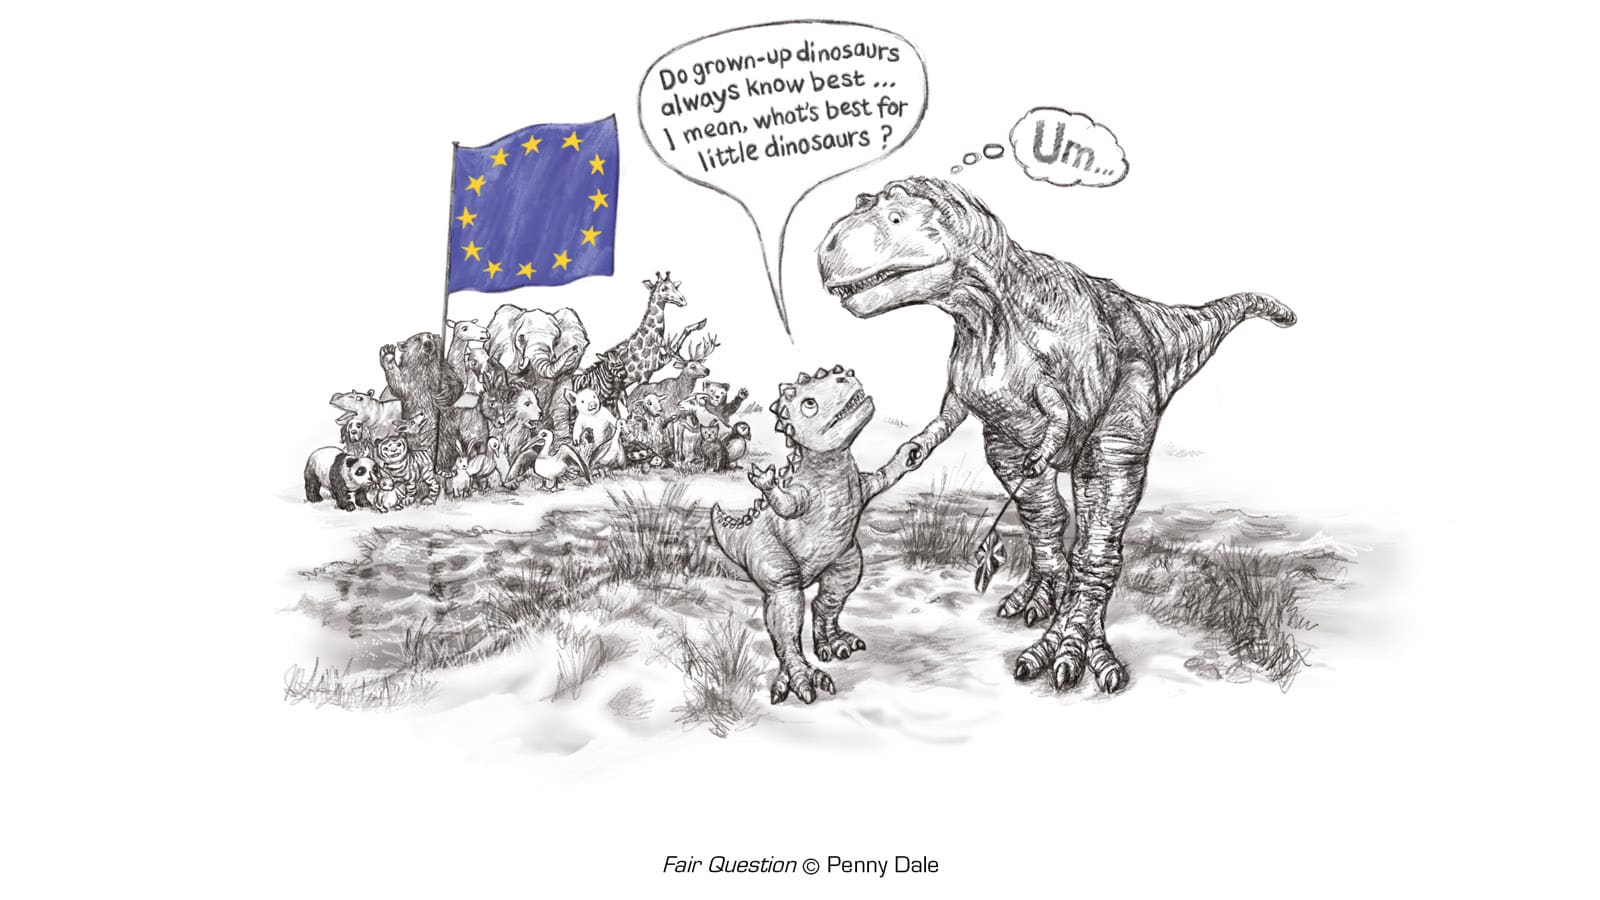 "Baby dinosaur asks its parent ""do grown-up dinosaurs always know best... I mean, what's best for little dinosaurs?"" while other animals unite under EU flag"